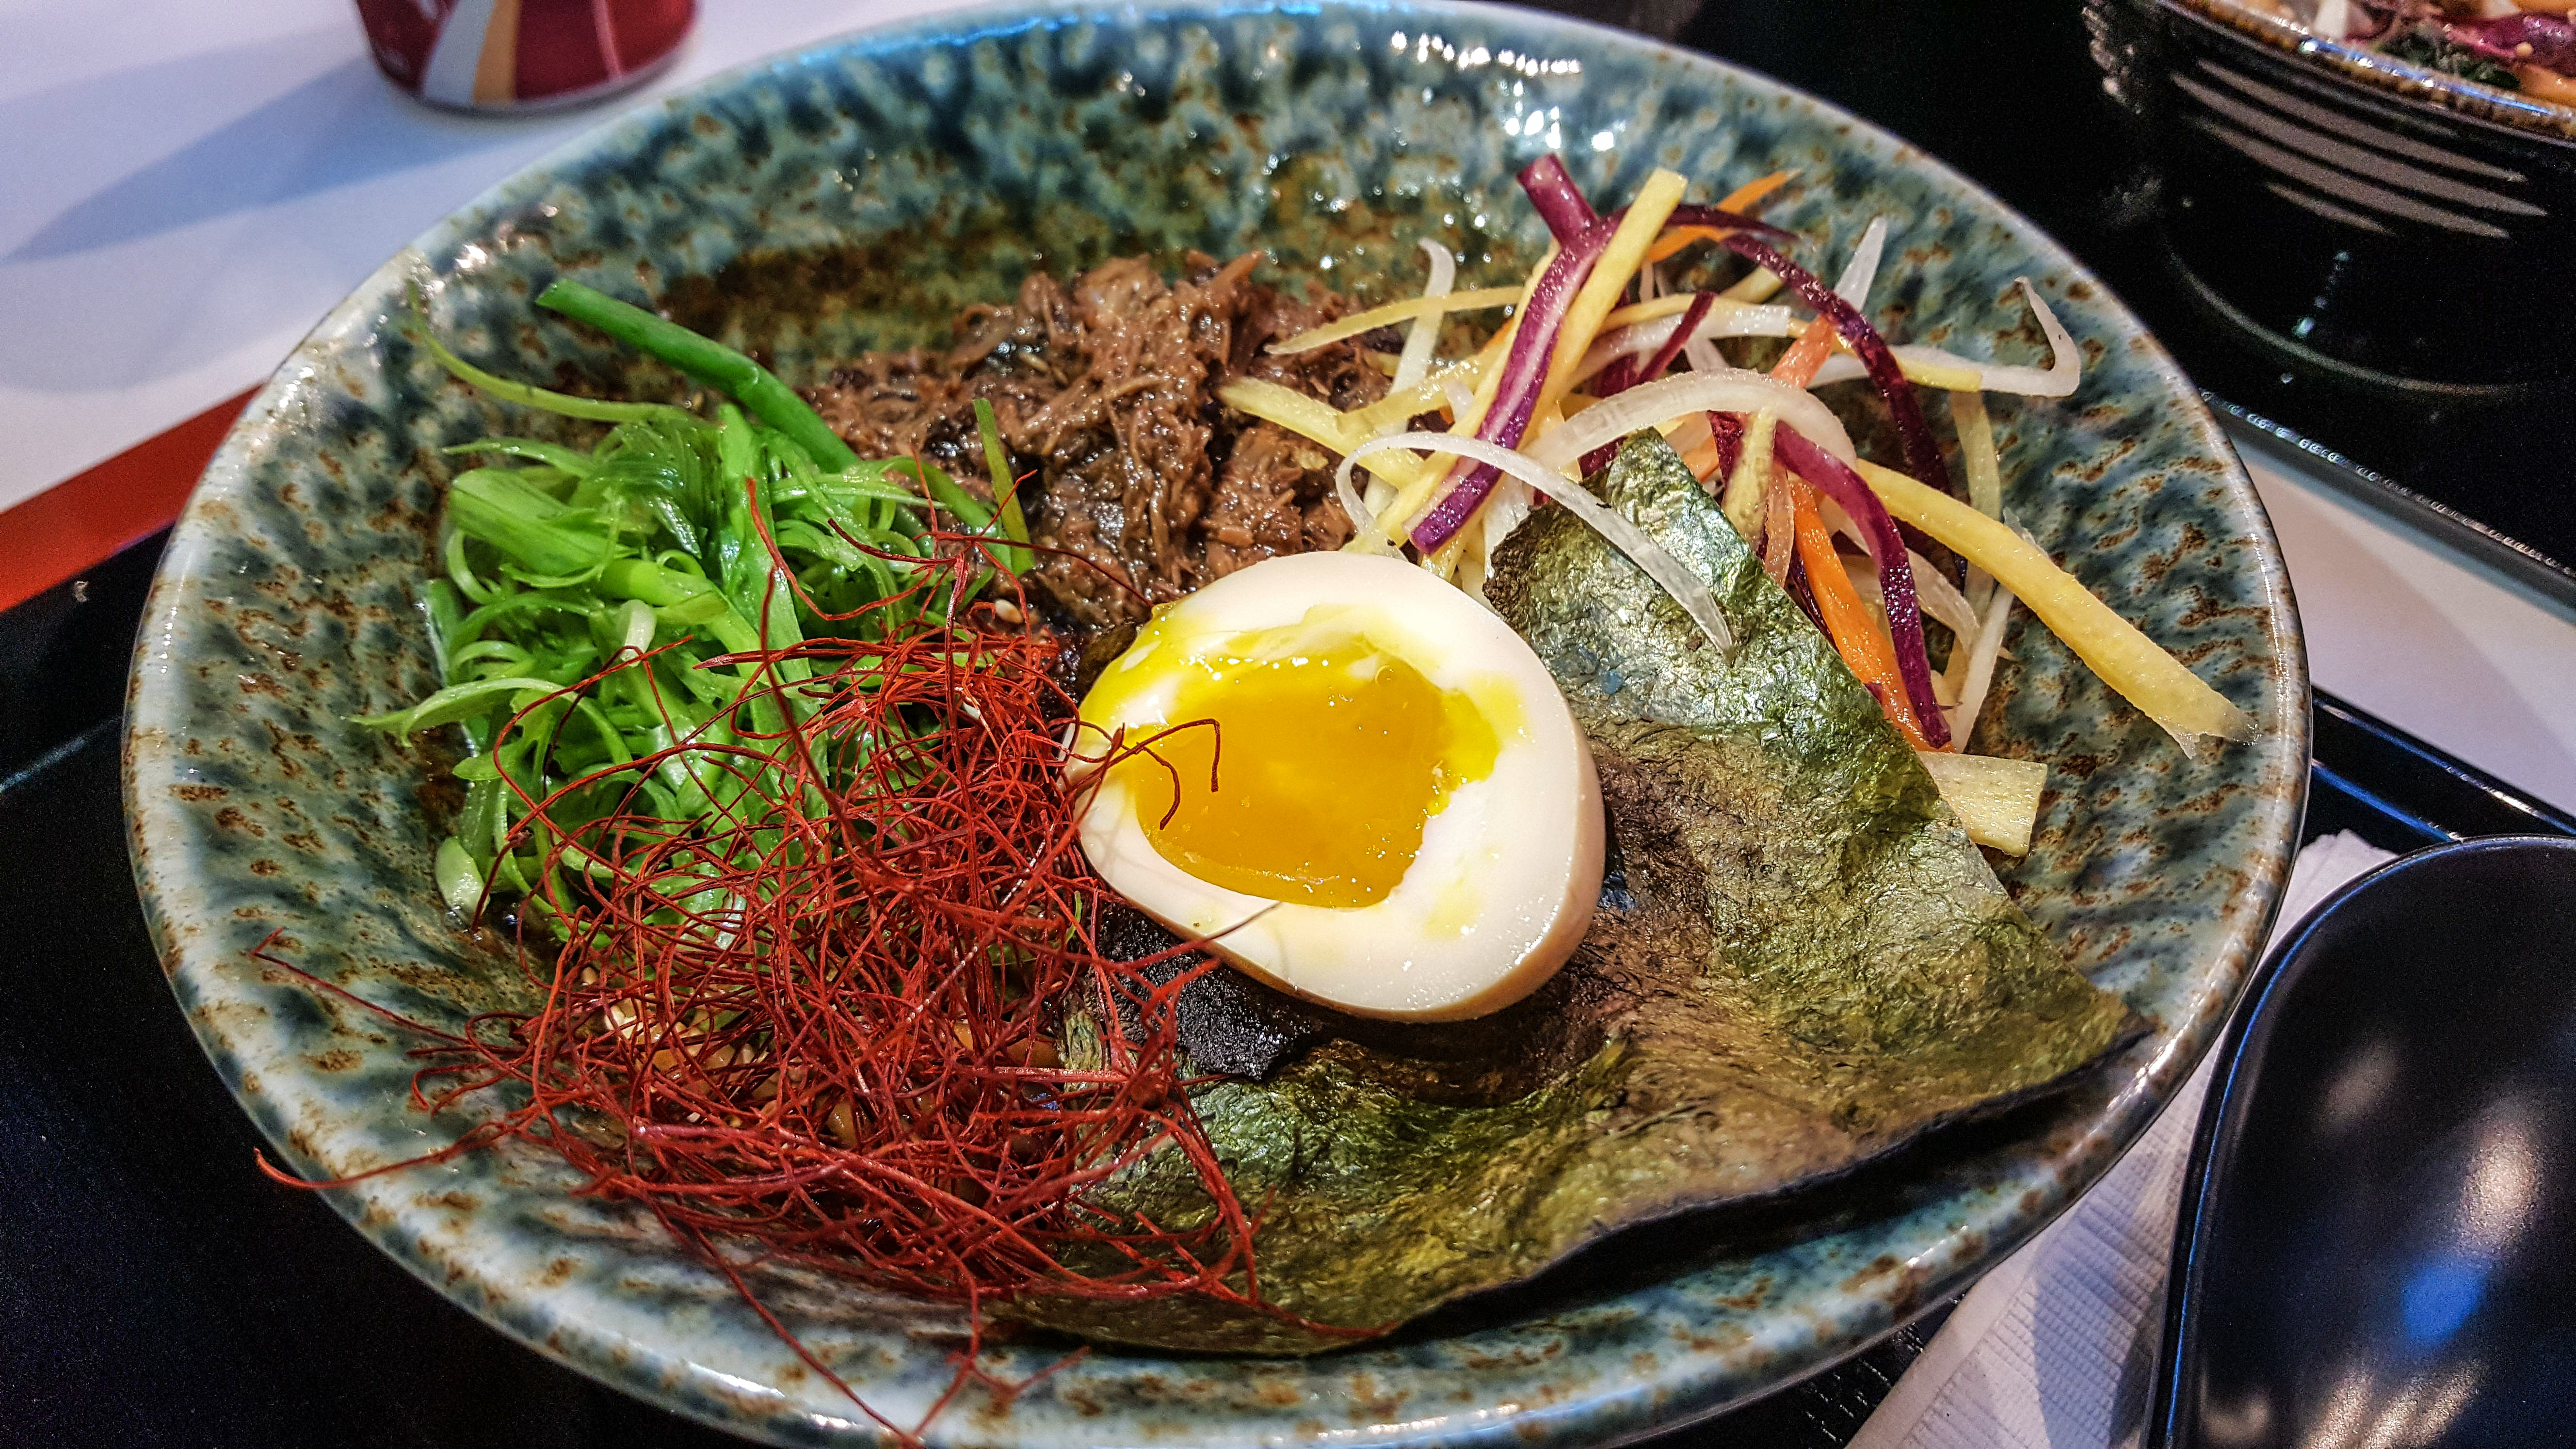 A bowl of ramen with saffron, a soft egg, seaweed, and chopped vegetables